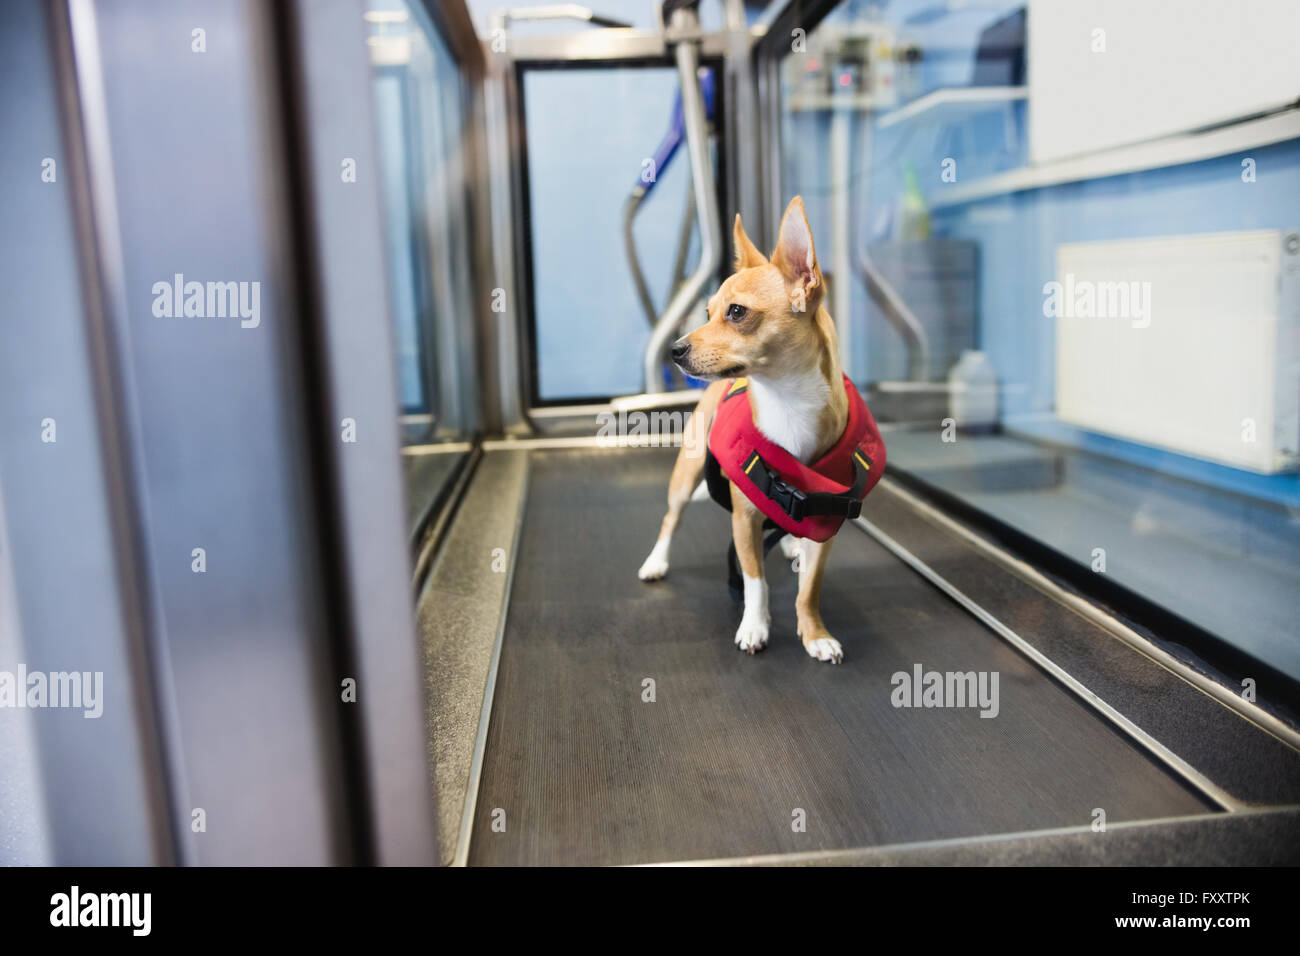 Dog on hydrotherapy treadmill in clinic - Stock Image